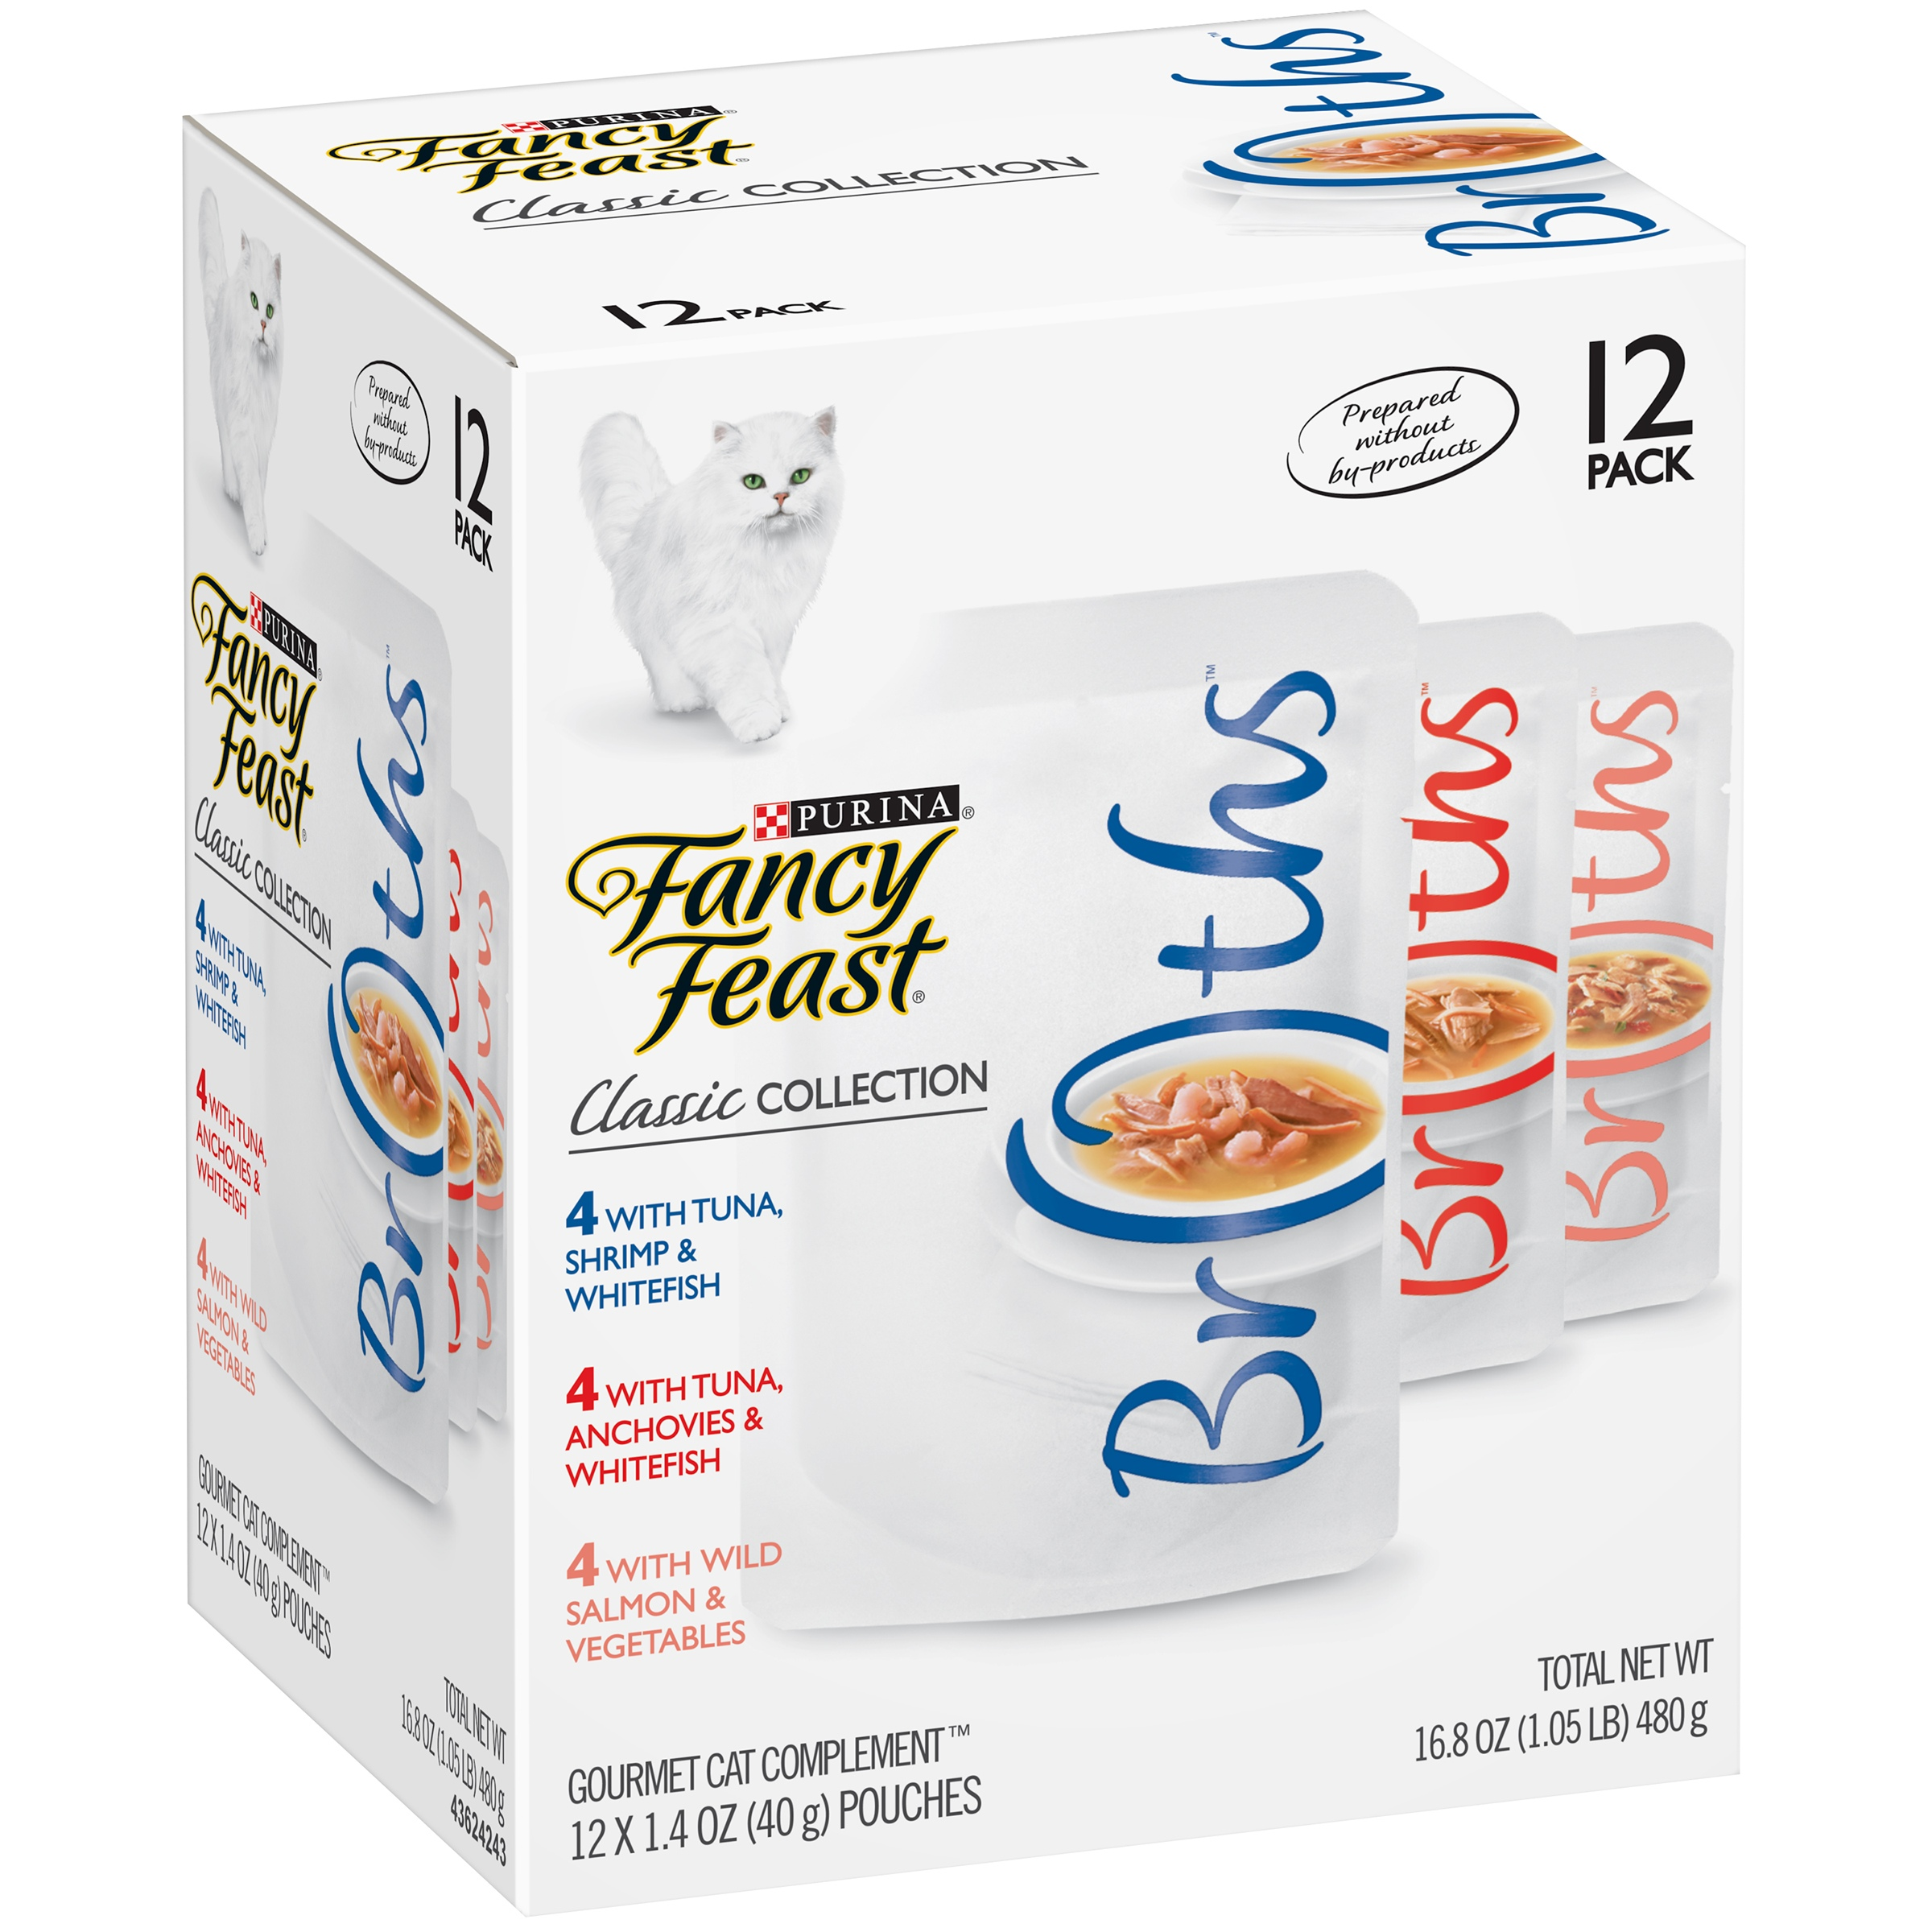 Purina Fancy Feast Classic Broths Collection Cat Complement Wet Cat Food, 1.4 Oz. Pouches (12 Pack)